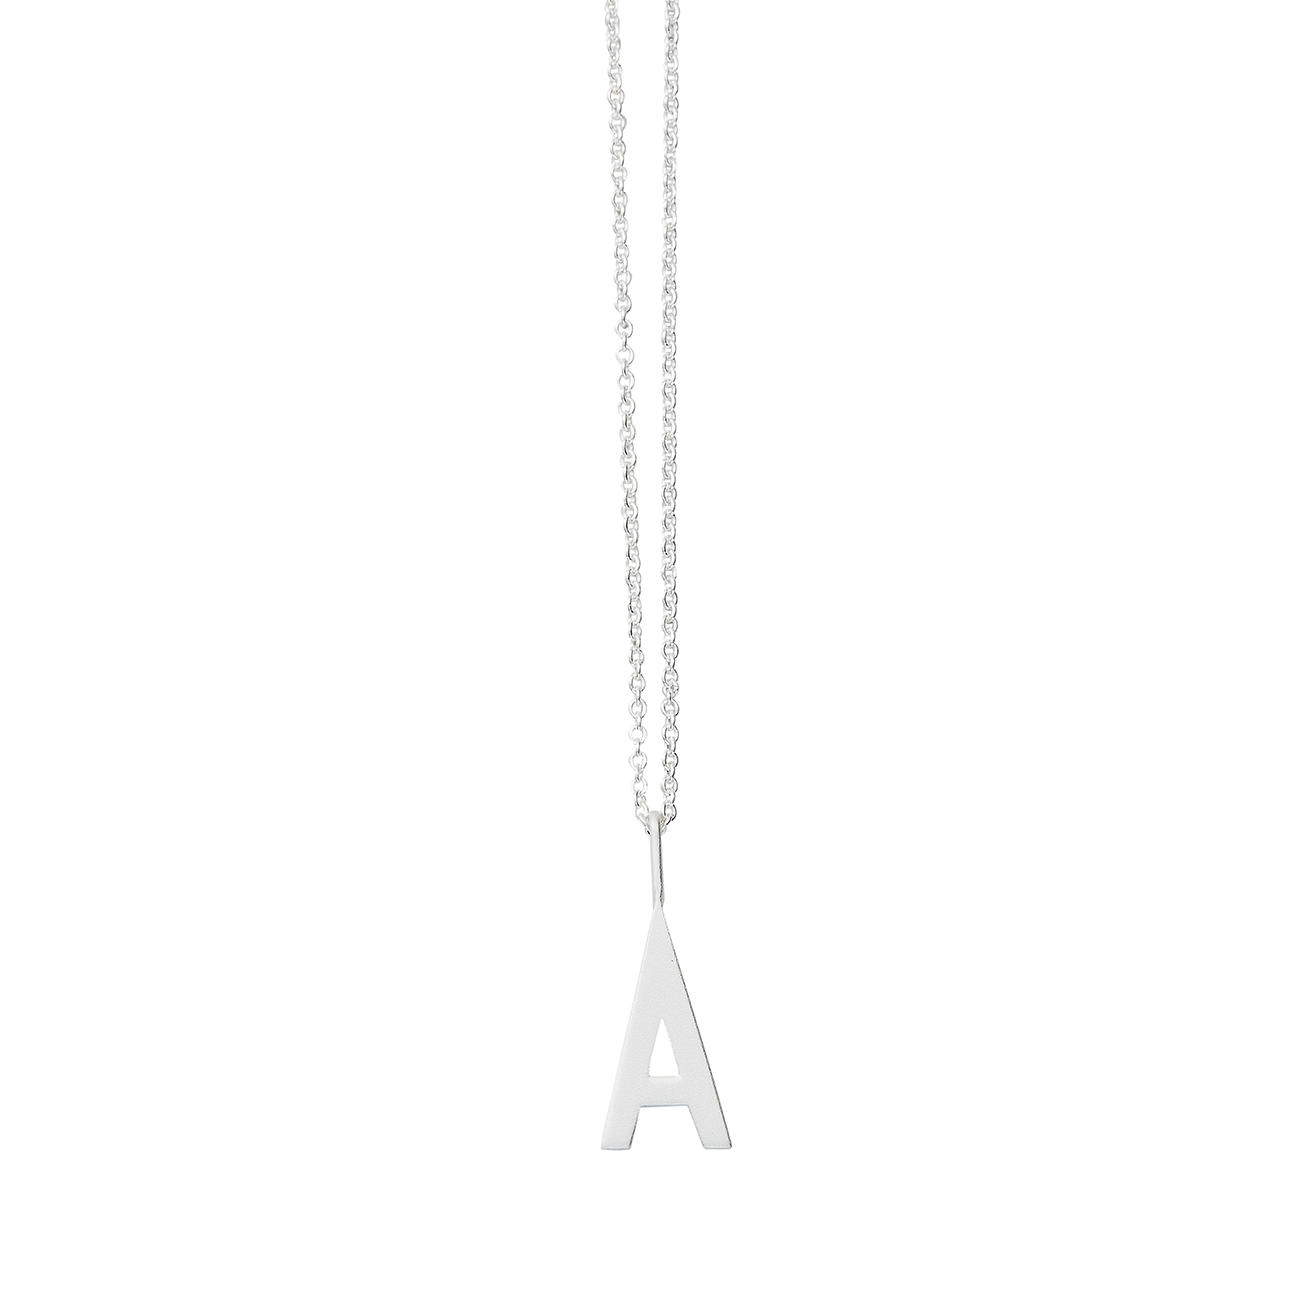 design-ltters-chain-kaede-long-lang-sterling-silver